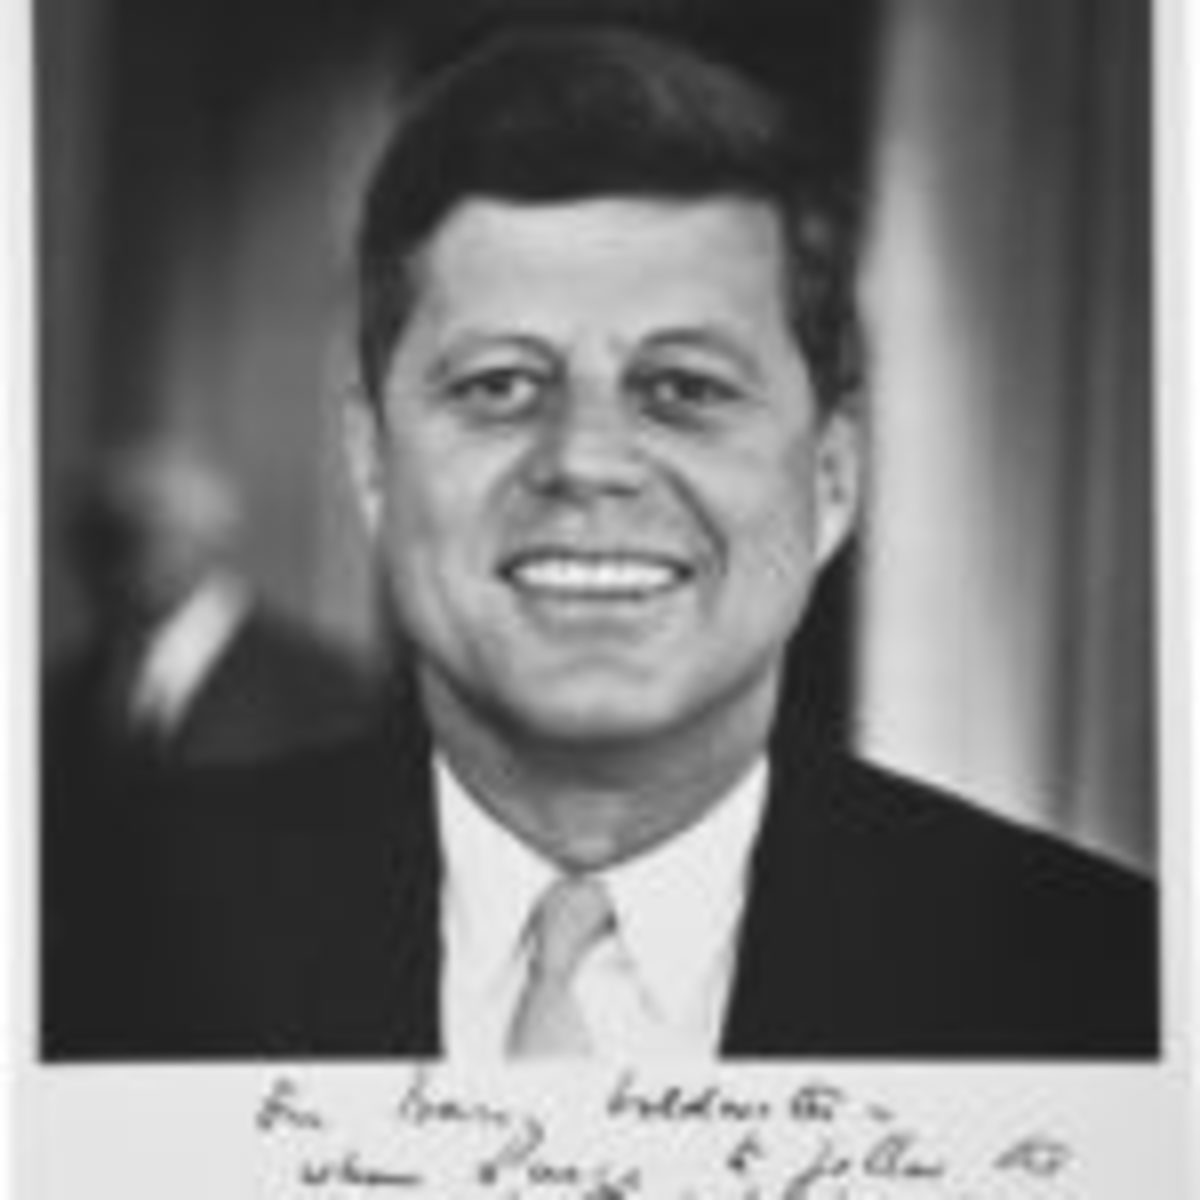 "John F. Kennedy signed photograph with a humorous inscription to Barry Goldwater. This black-and-white 8"" x 10"" image is an original photograph taken by Goldwater. Across the bottom JFK wrote: ""For Barry Goldwater – Whom I urge to follow the career for which he has shown such talent – photography! – from his friend – John Kennedy."" Near-mint condition. $17,925Courtesy of Heritage Auctions, www.ha.com"